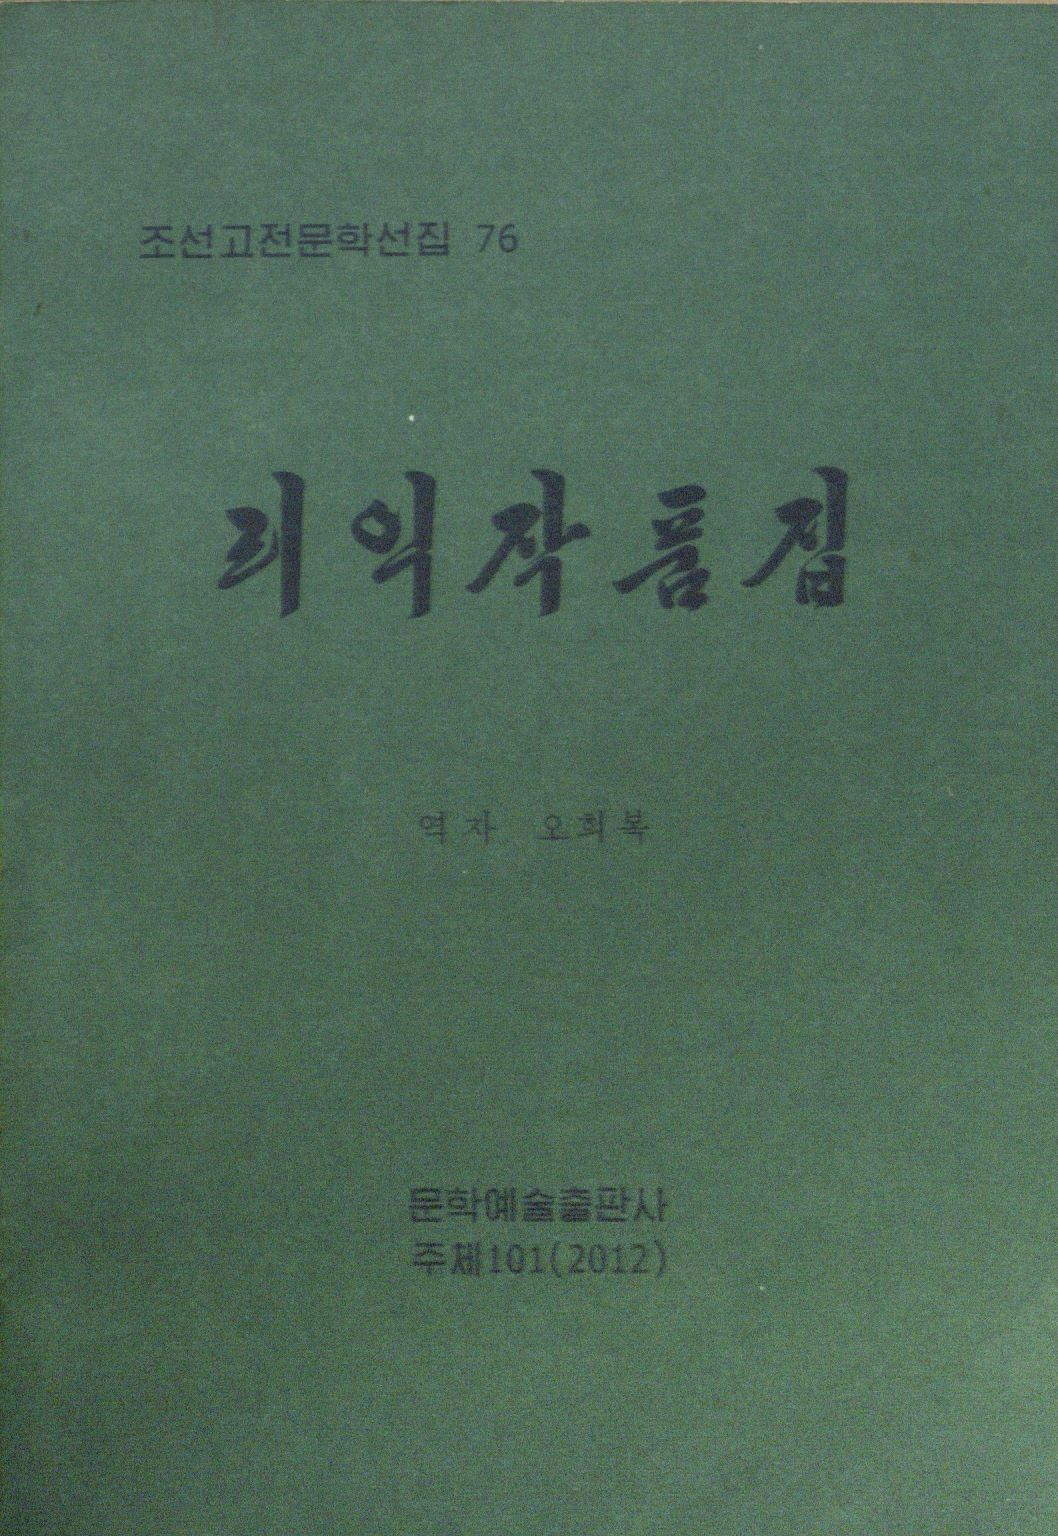 title page of 리익 작품집